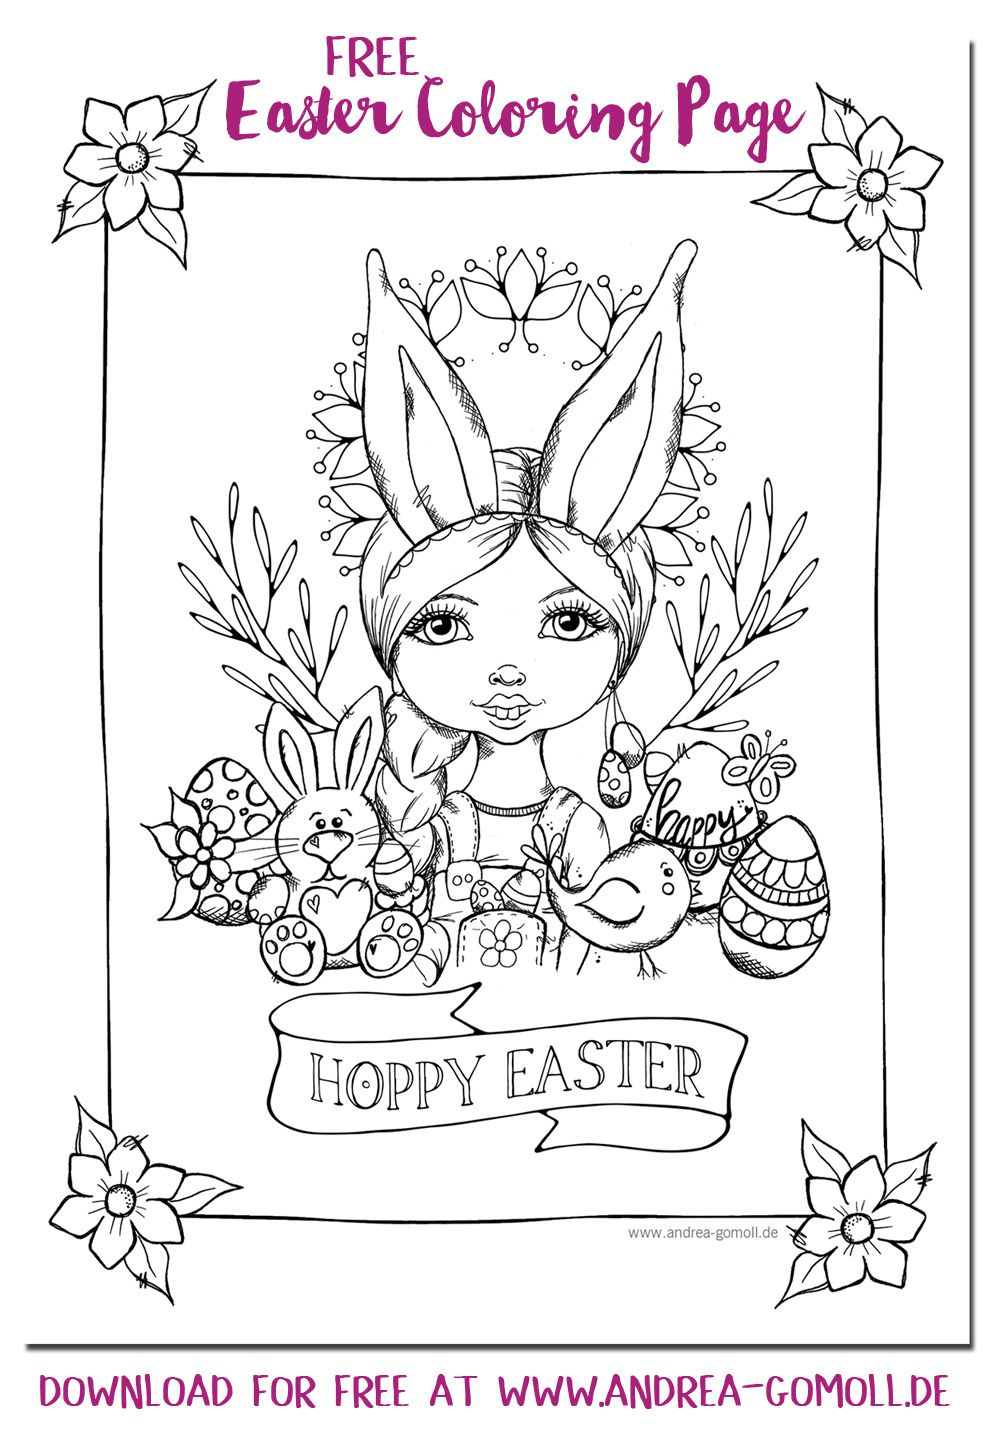 Cre8tive Cre8tions by Andrea Gomoll | Free Printable Hoppy Easter ...